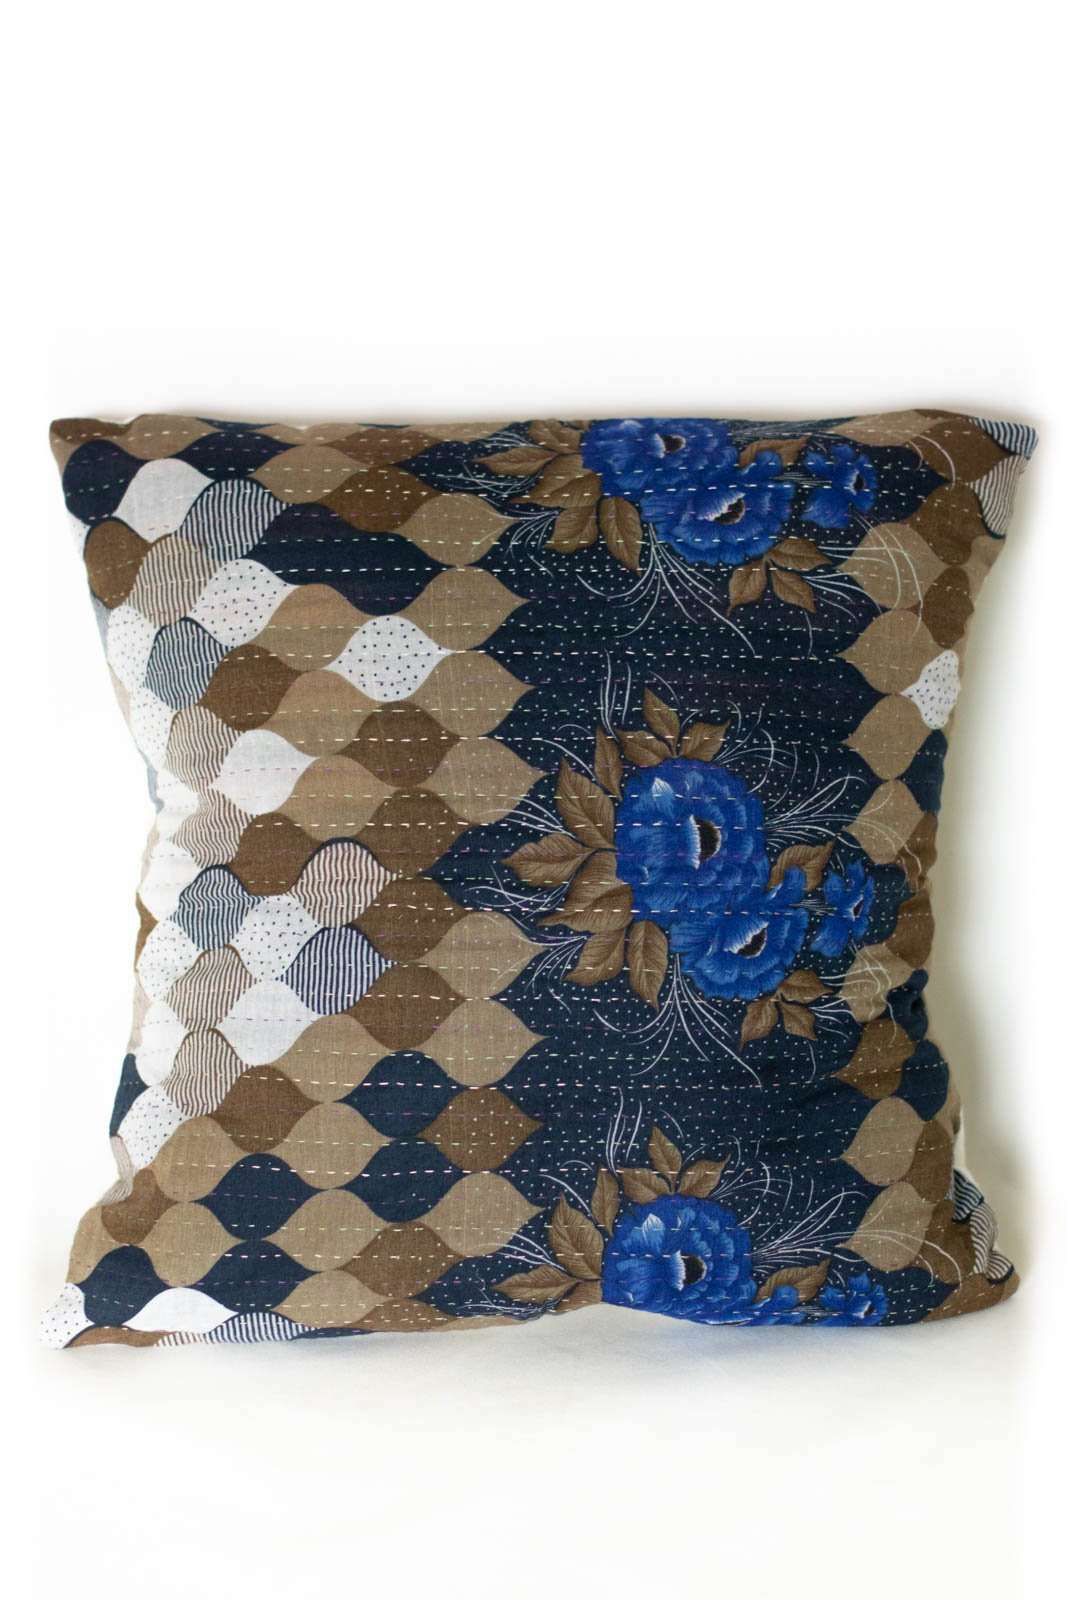 Marvelous no. 1 Kantha Pillow Cover